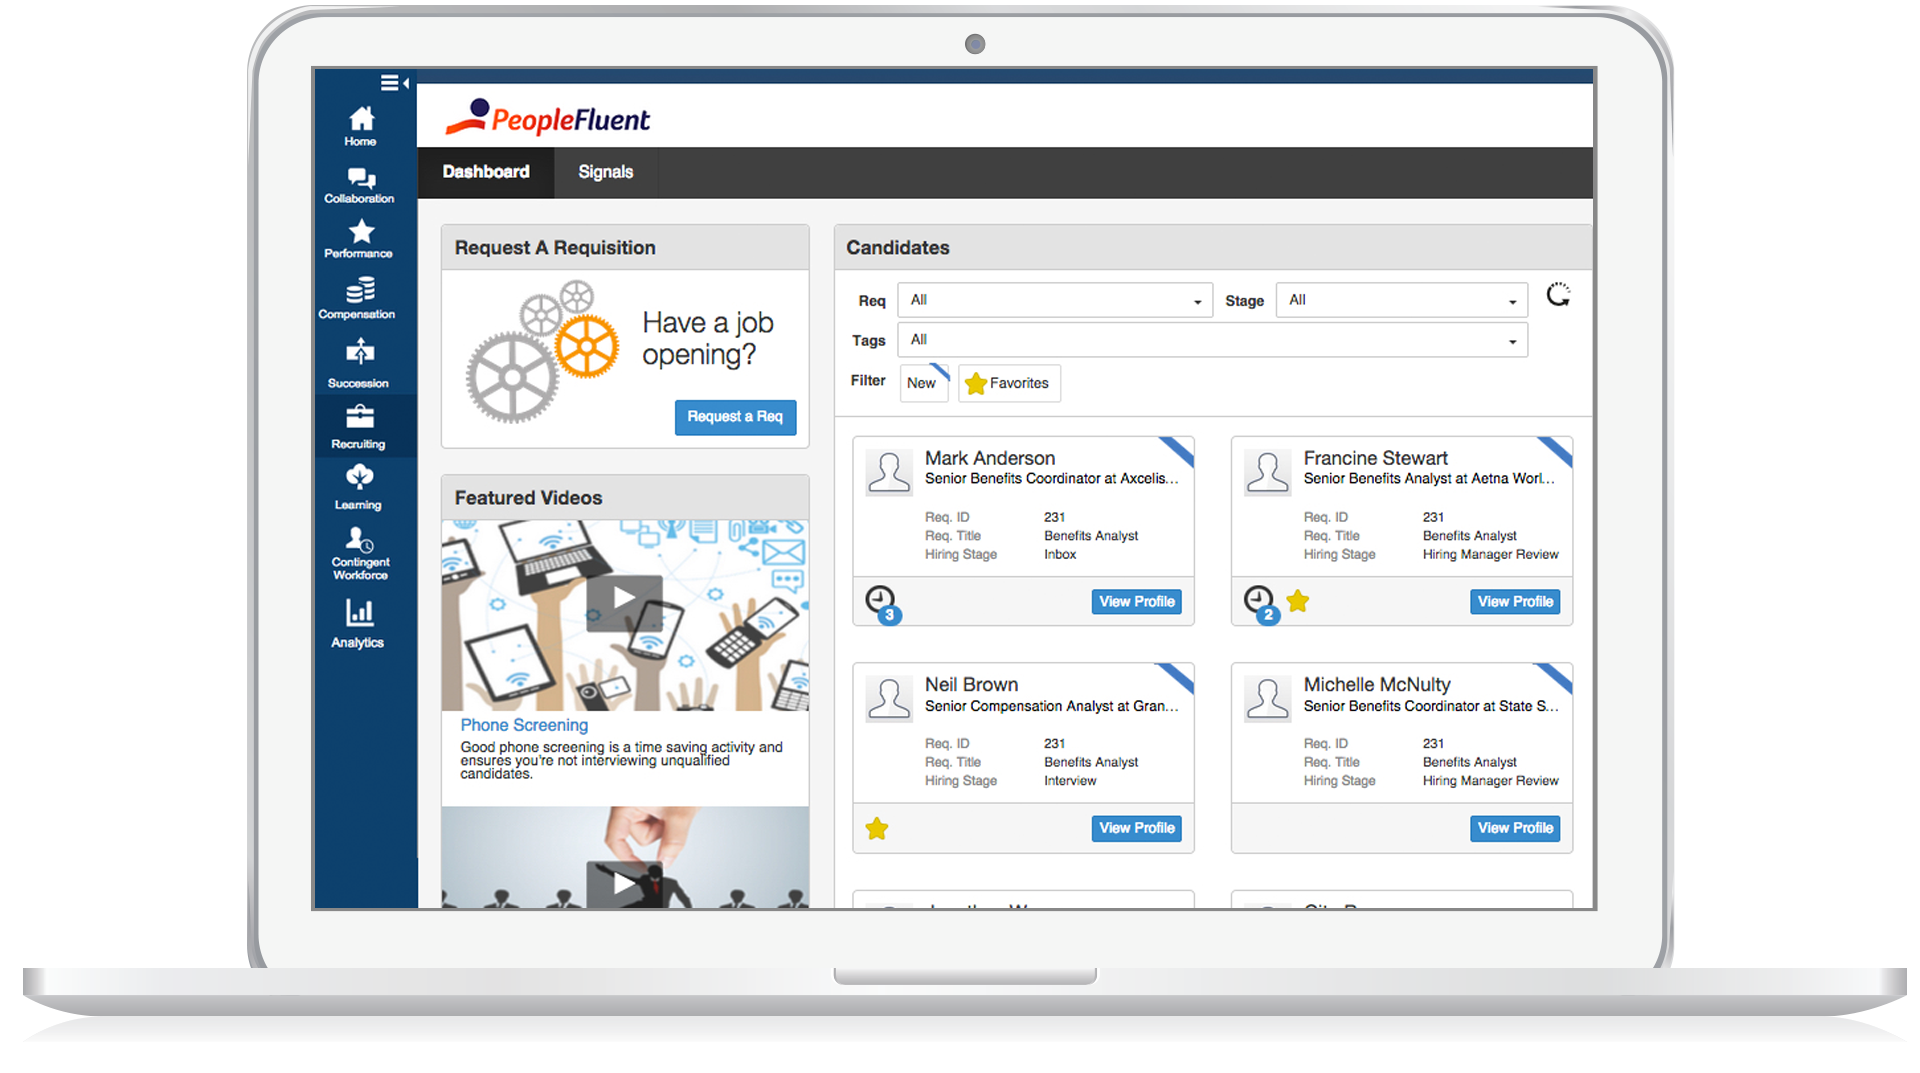 PeopleFluent Learning Software - Candidate filtering